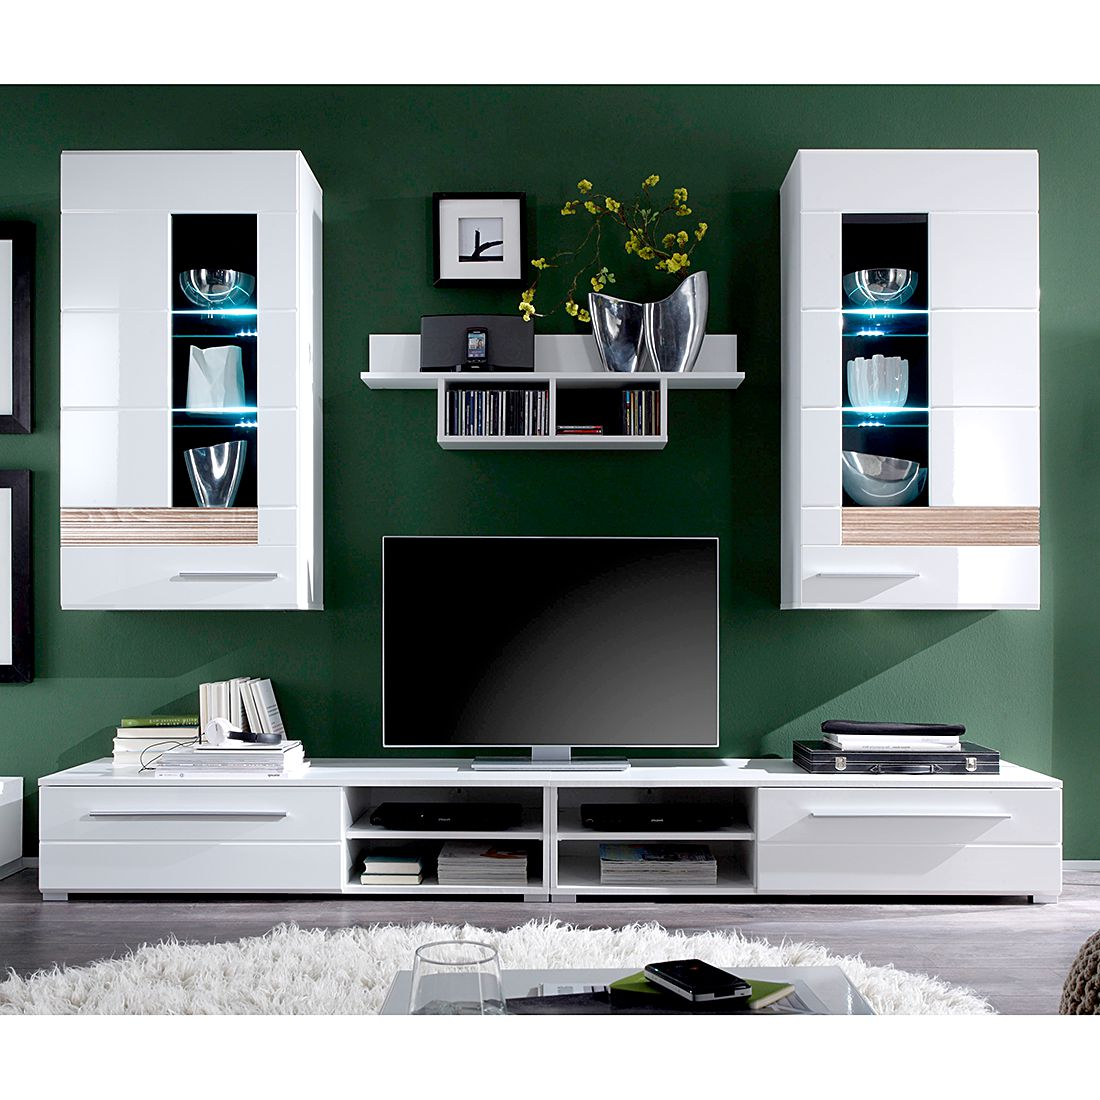 wohnwand meeno ii 4 teilig inkl beleuchtung wei hochglanz eiche s gerau dekor schrank. Black Bedroom Furniture Sets. Home Design Ideas